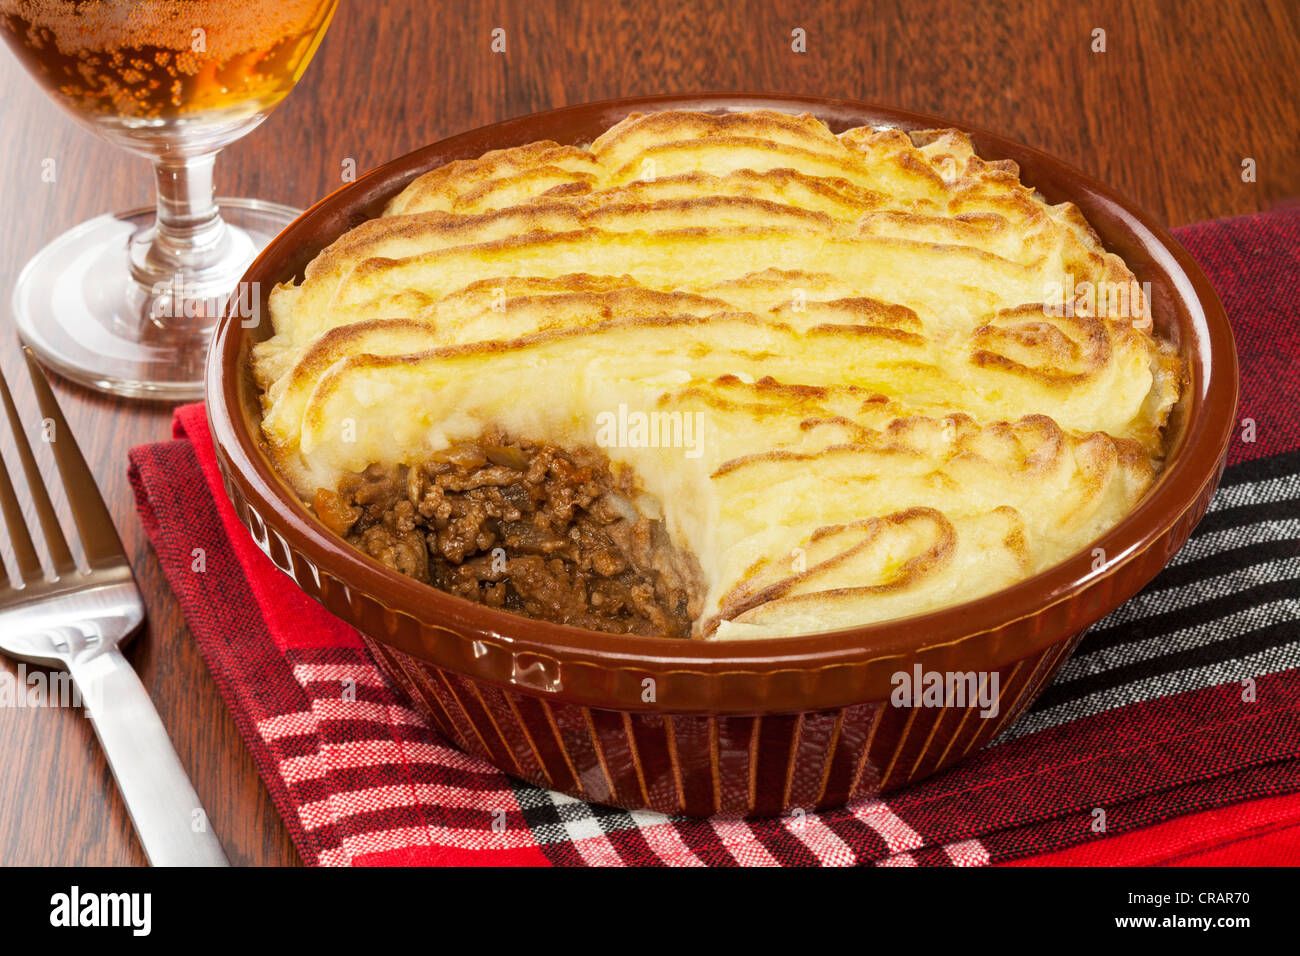 Cottage or Shepherd's Pie with a glass of beer. - Stock Image